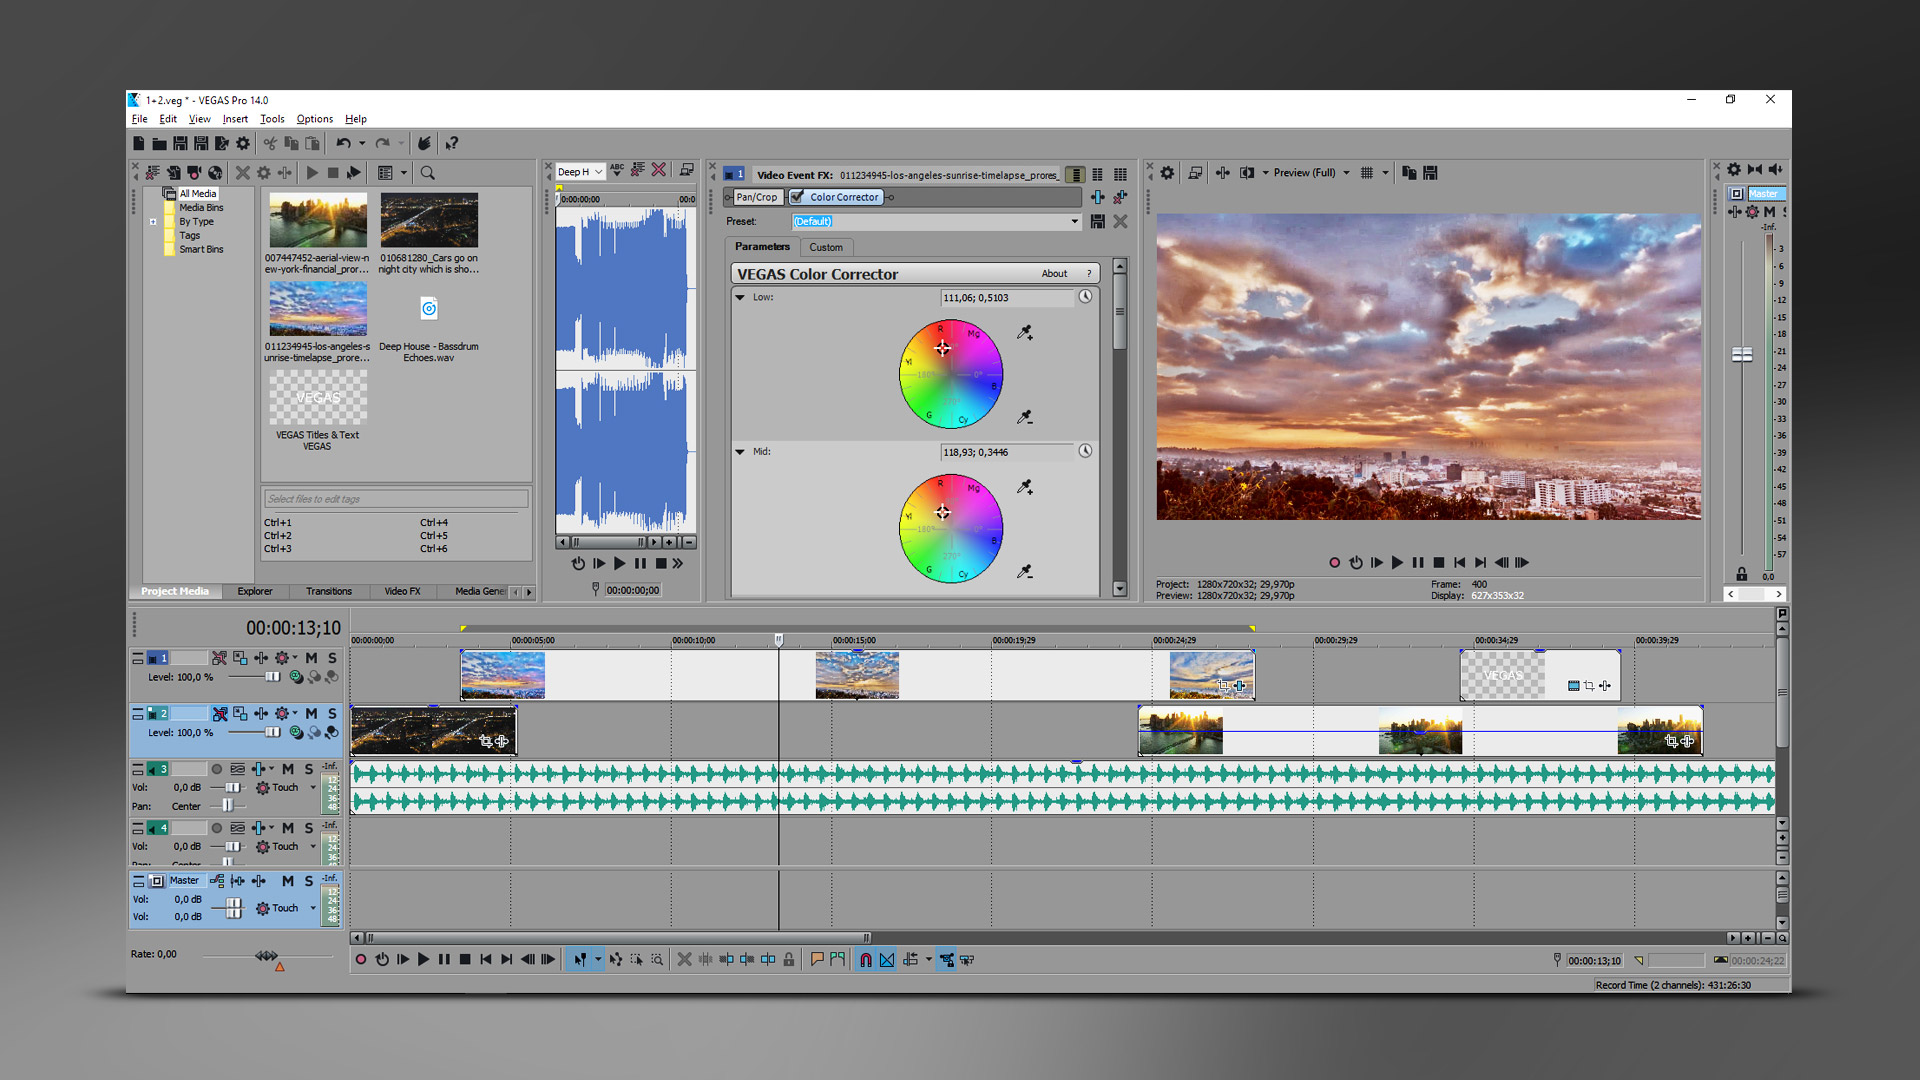 How to Get Sony Vegas Free Legally – Download Sony Vegas Free